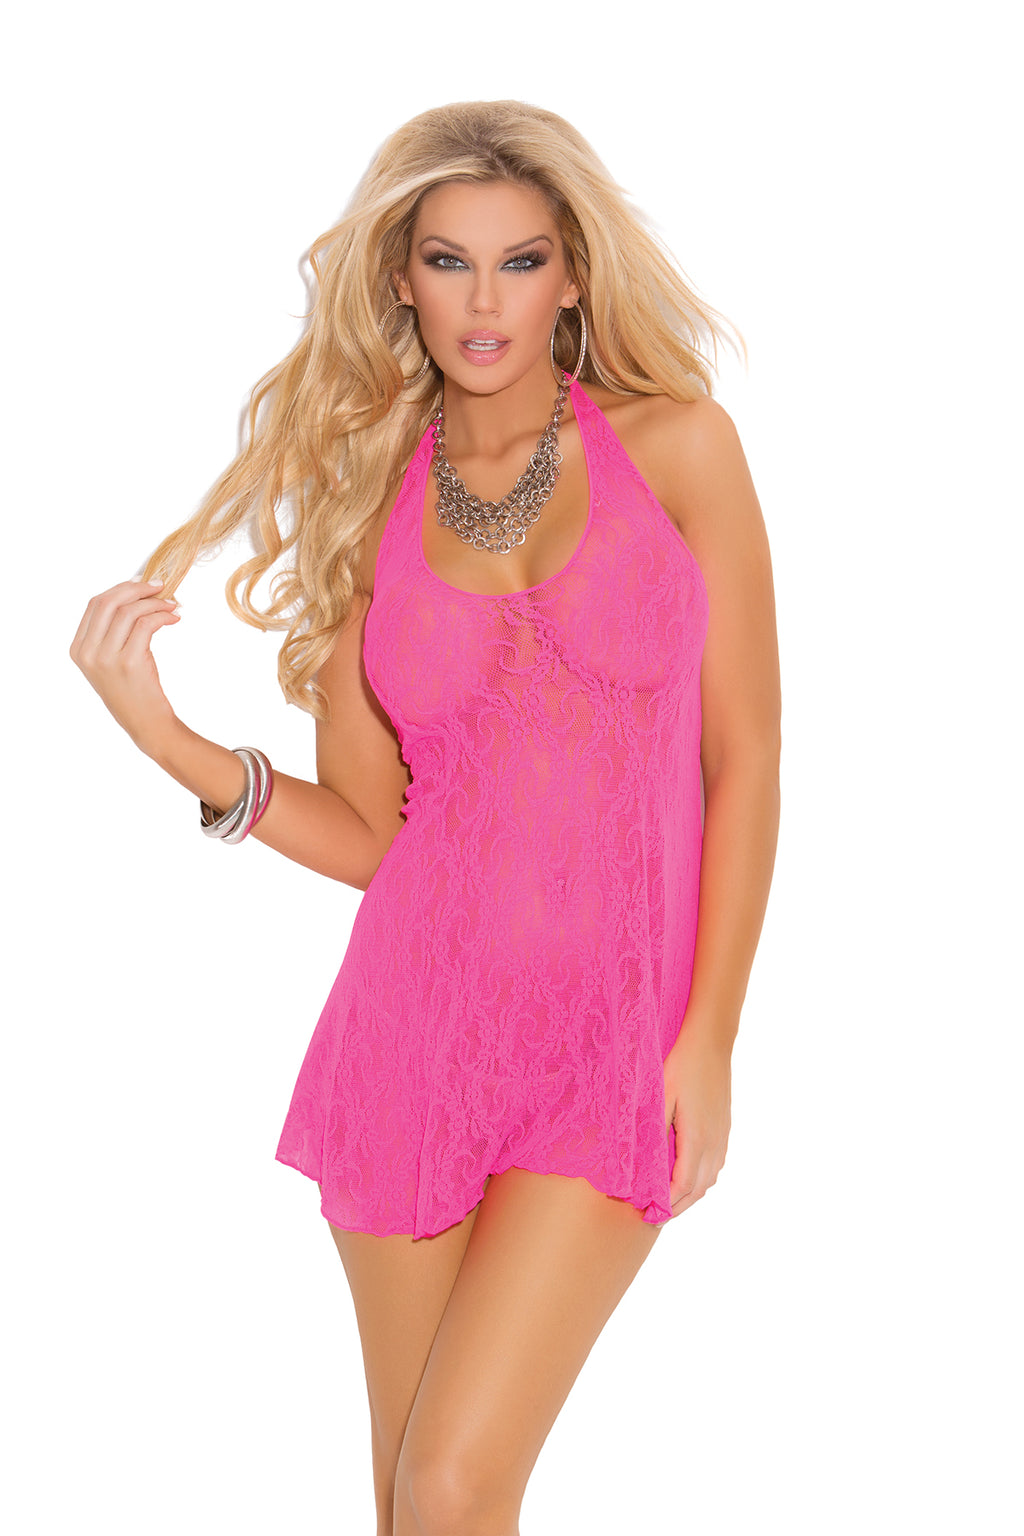 Elegant Moments 1422 Neon Pink Lace Halter Mini Dress